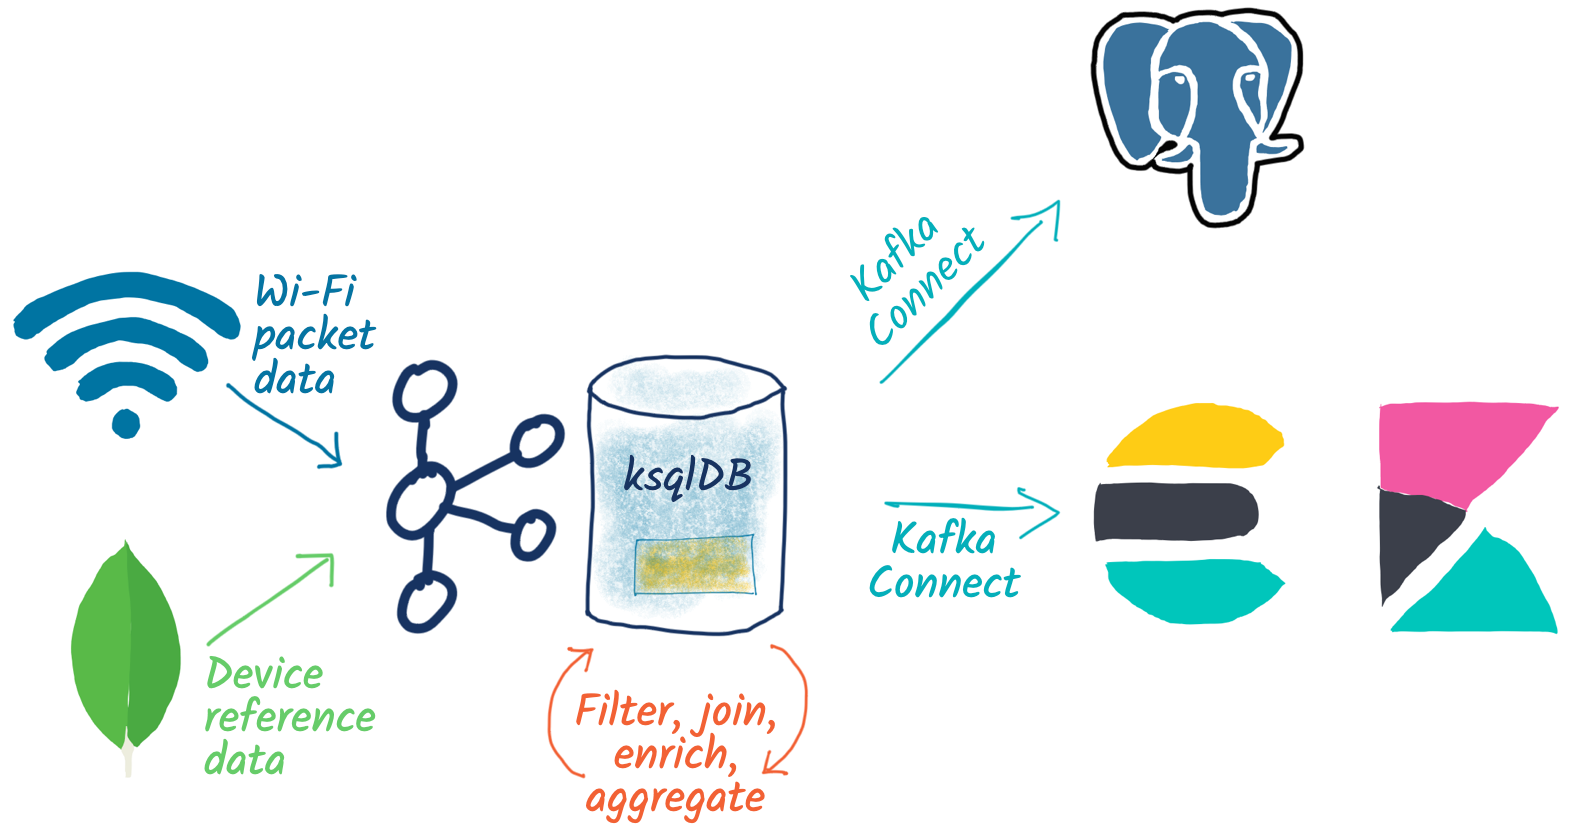 Wi-Fi packet data | Device reference data ➝ Kafka | ksqlDB ➝ Kafka Connect ➝ Postgres | Elasticsearch + Kibana